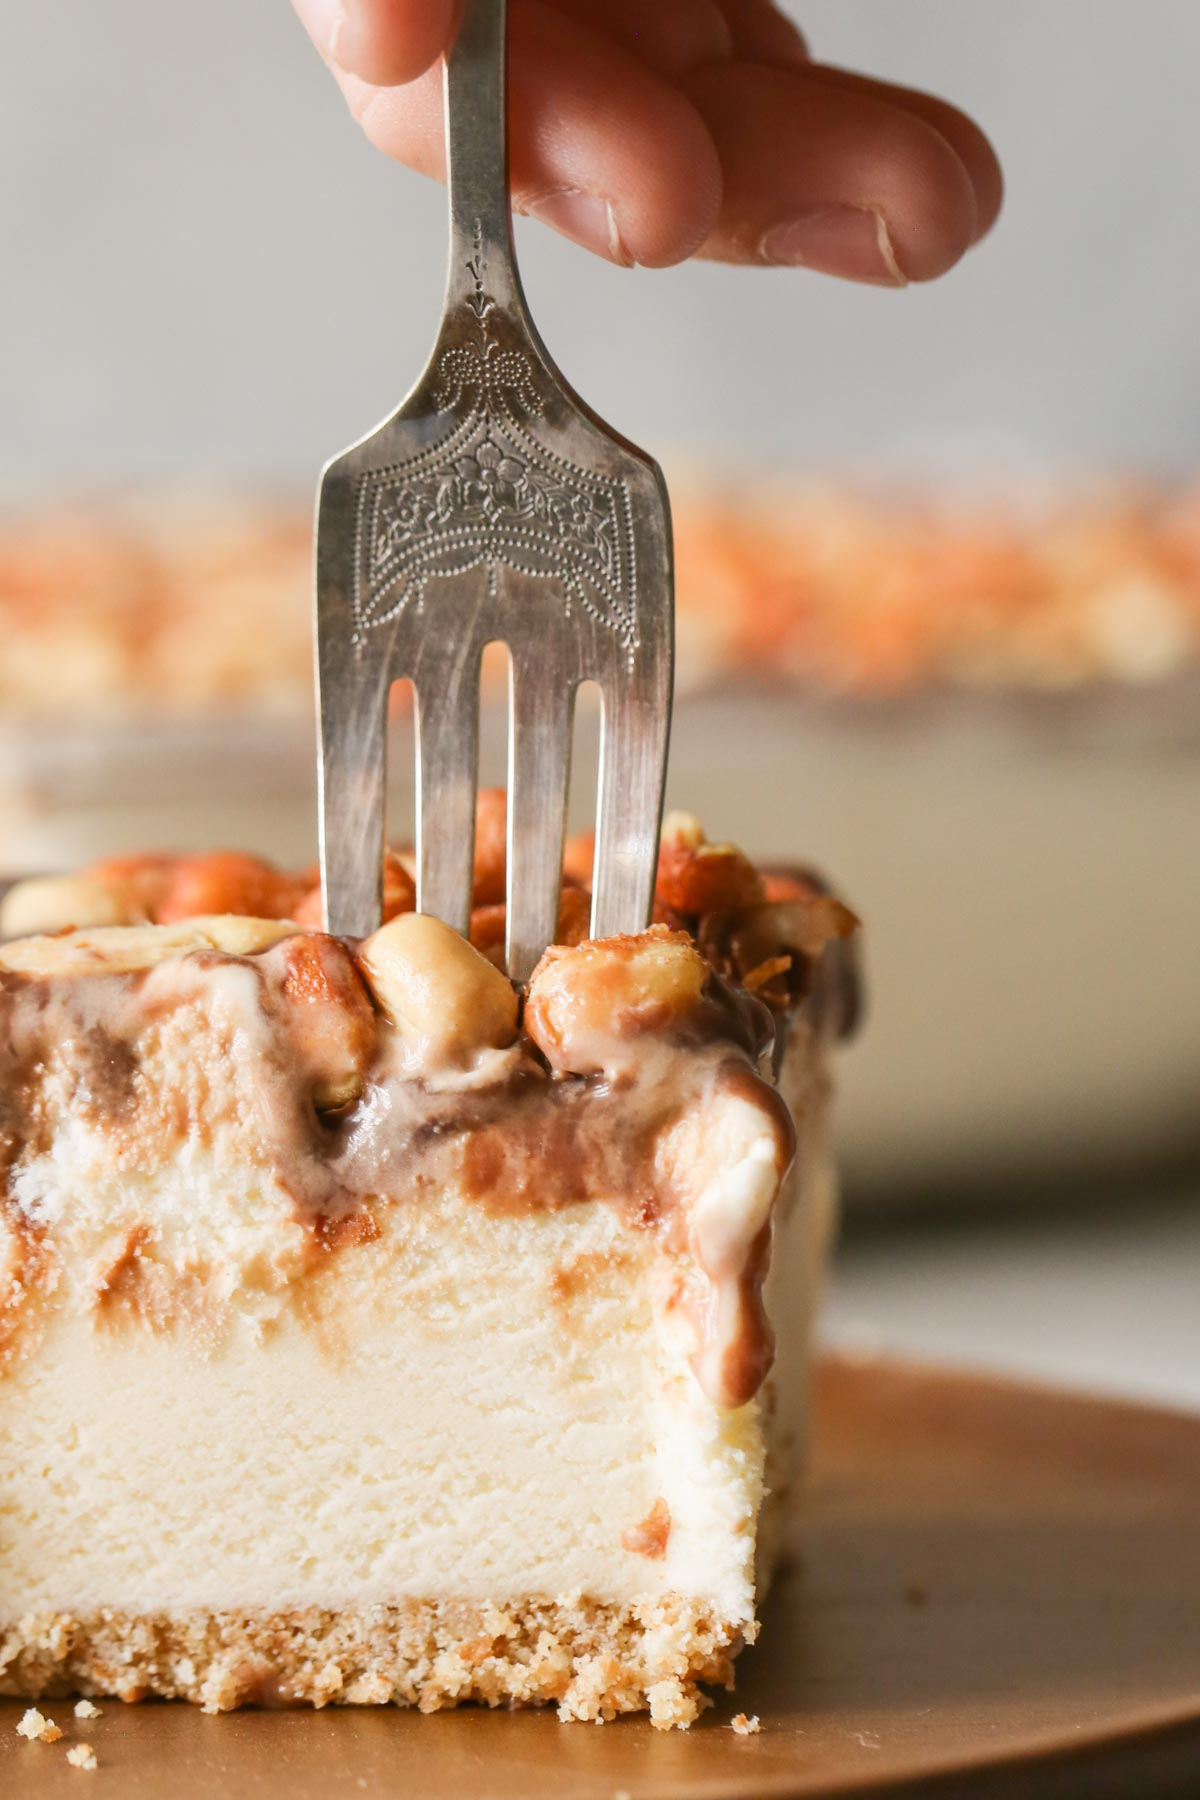 A close up of a fork sticking in a piece of Peanut Buster Ice Cream Dessert.   The layers of the Nilla Wafer crust, vanilla ice cream, chocolate fudge, and Spanish peanuts are distinguishable.